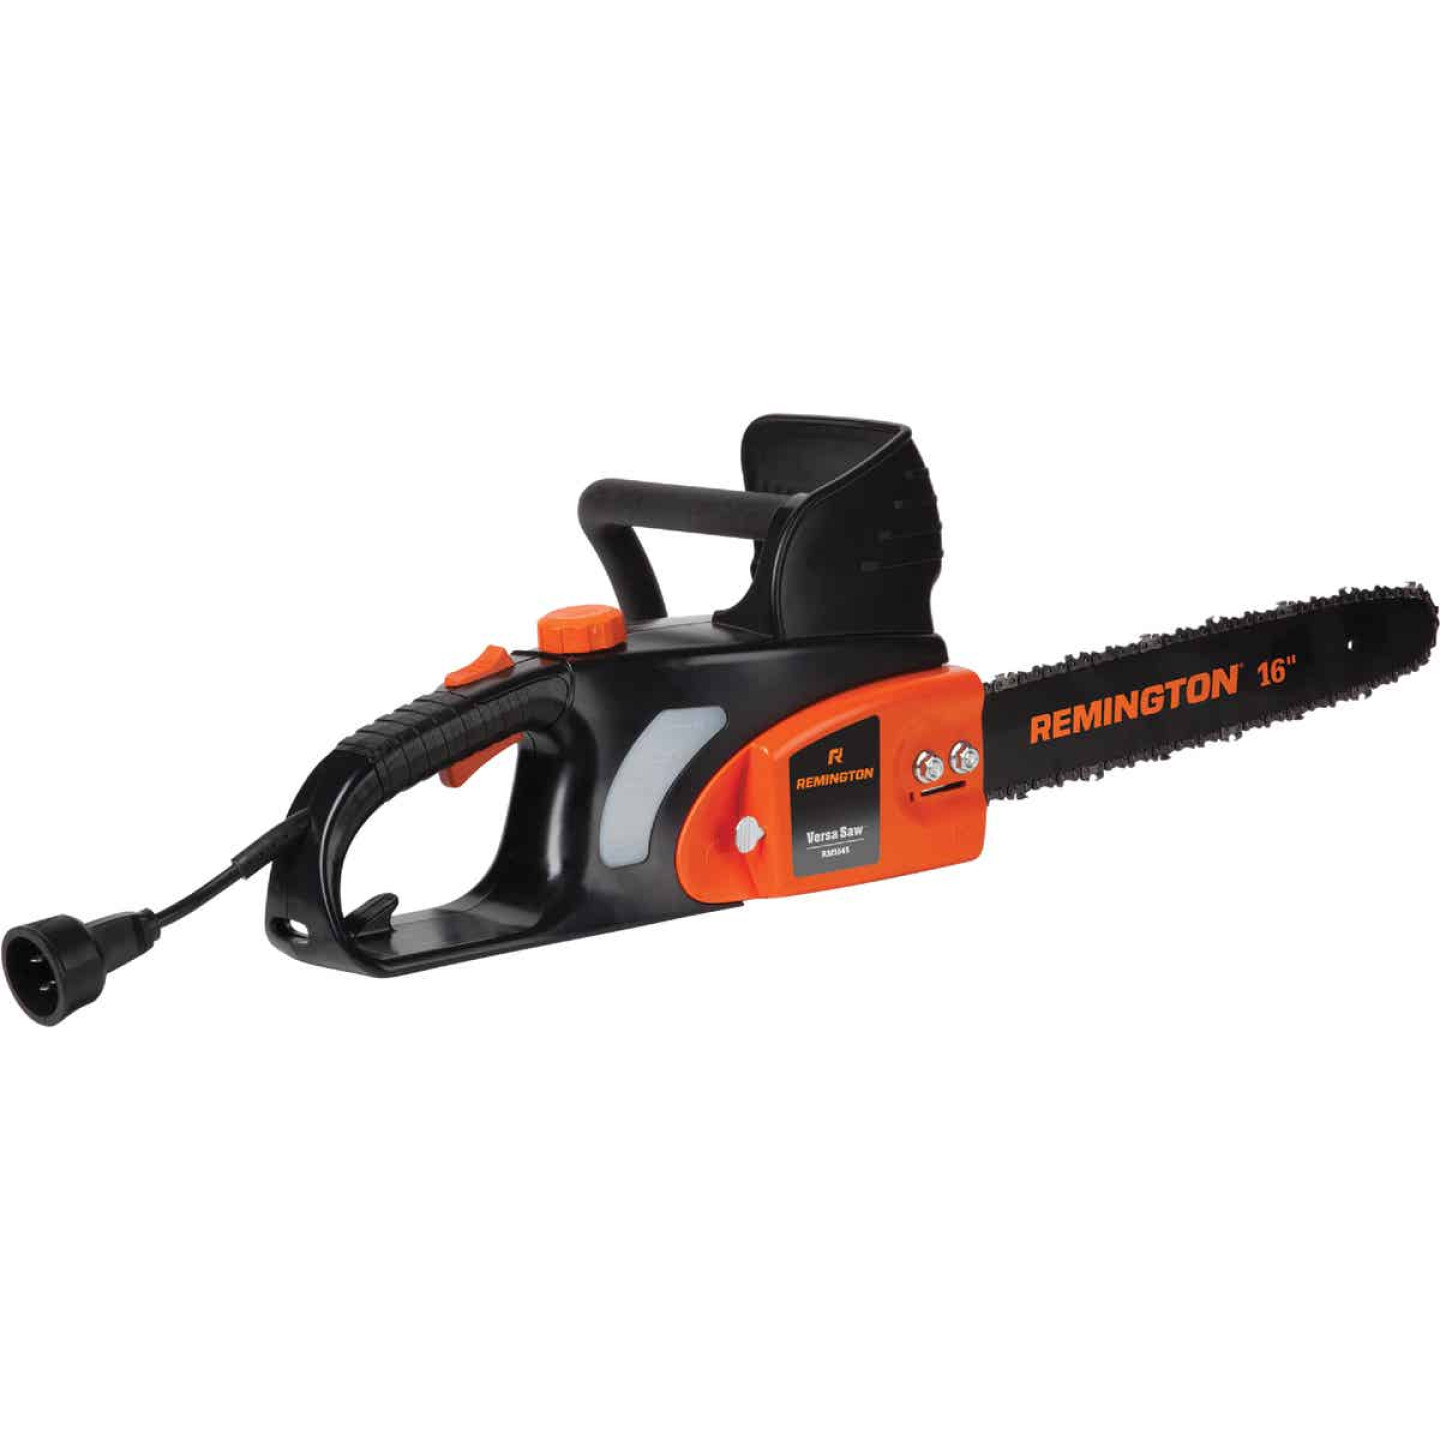 Remington Versa Saw RM1645 16 In. 12A Electric Chainsaw Image 1